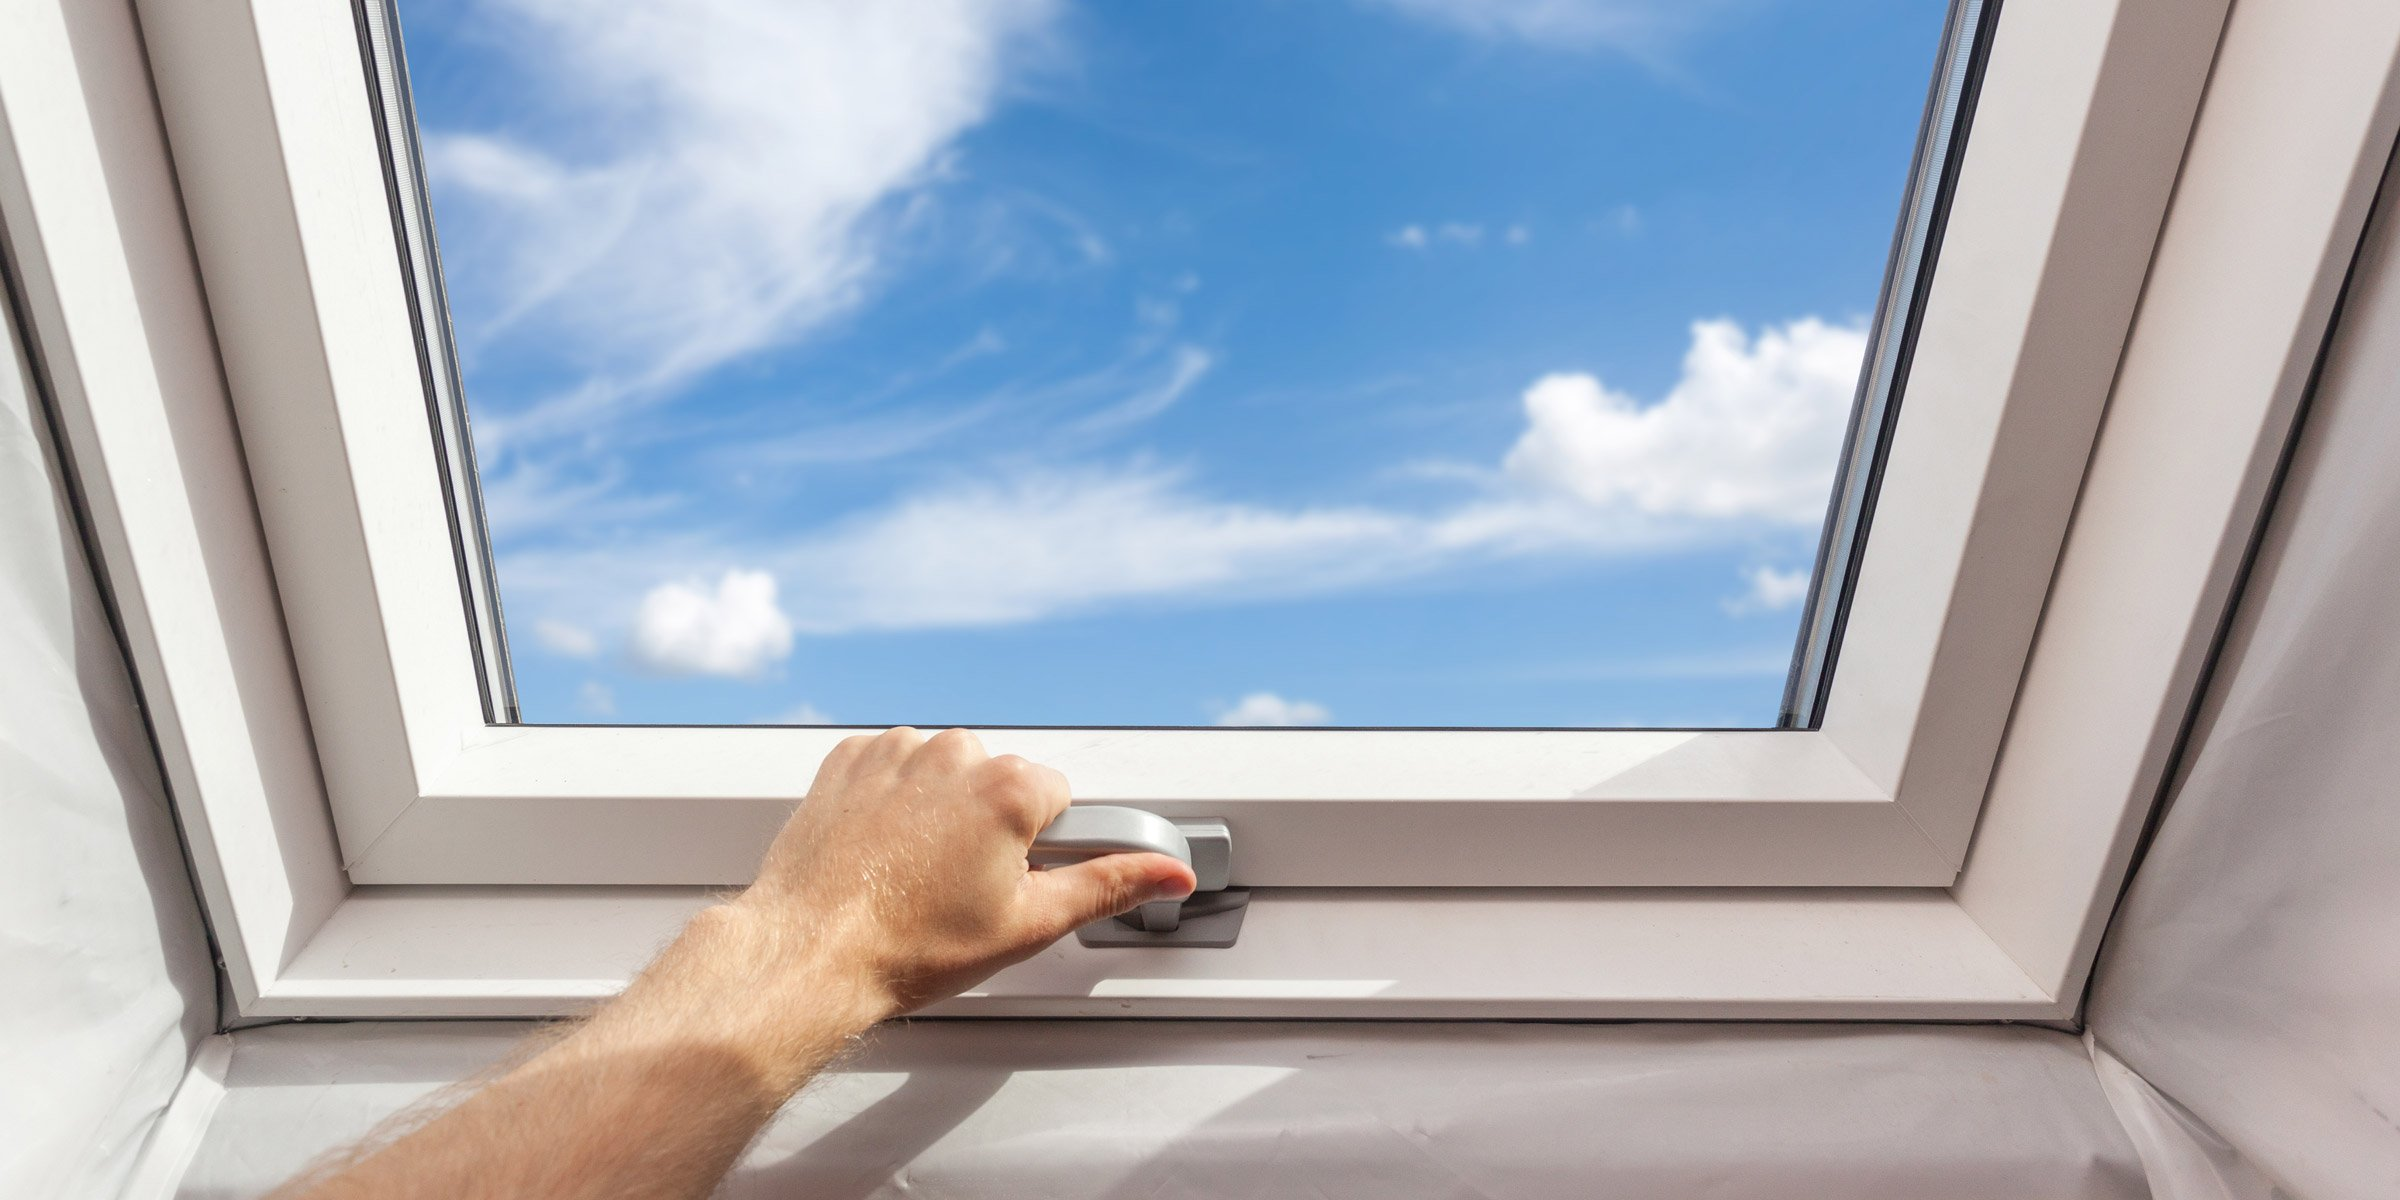 Skylights - what services do Skylight installers offer?